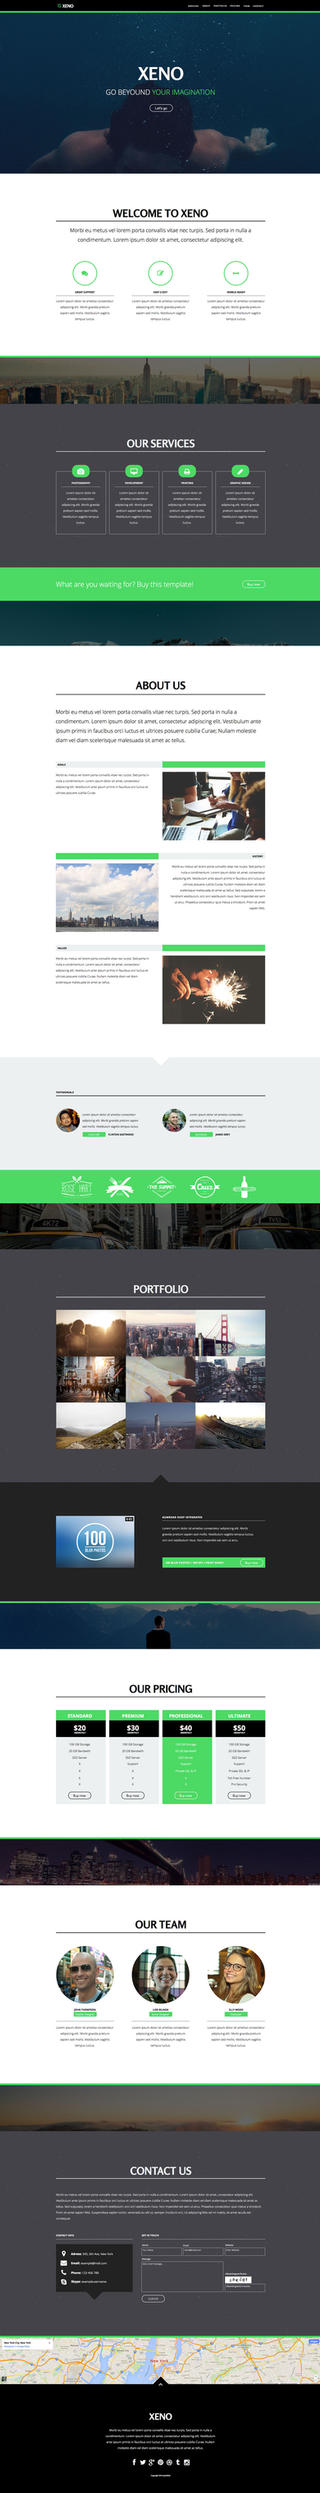 Xeno - One Page Muse Template by styleWish